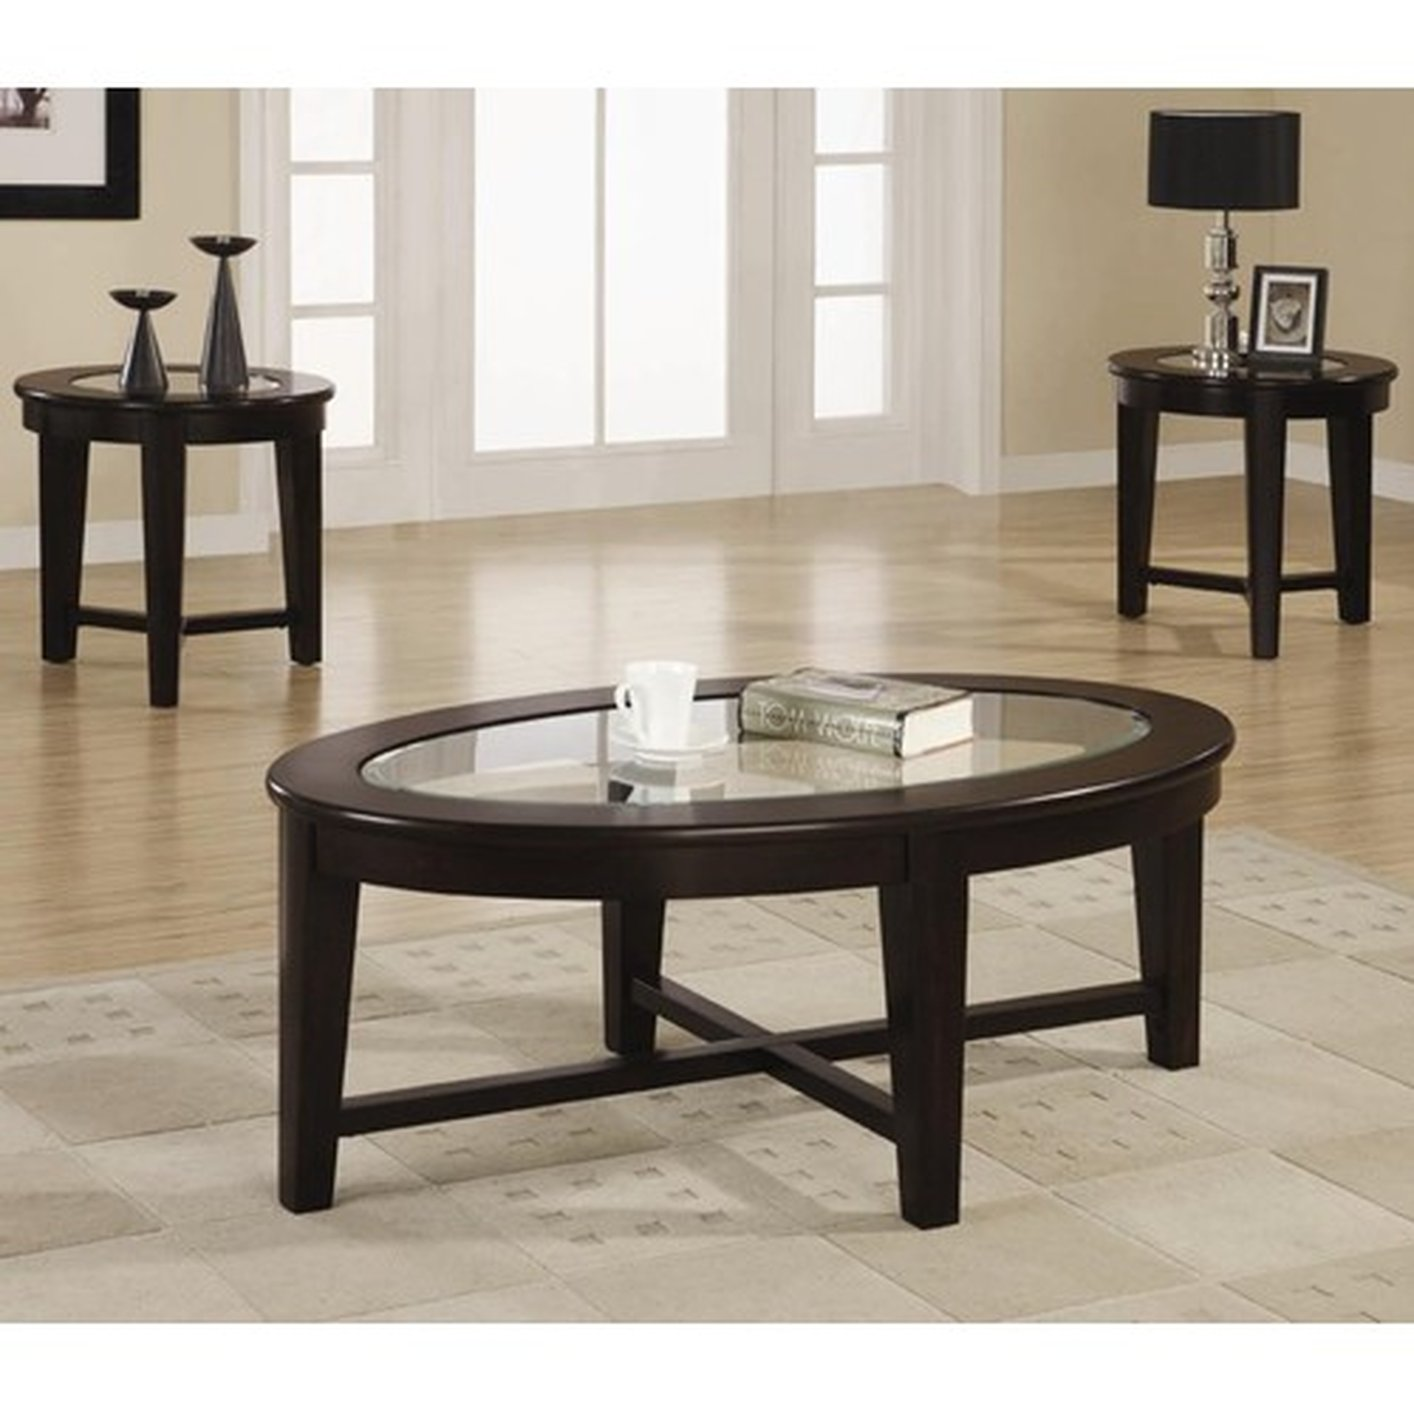 Alexis Brown Glass Coffee Table Set - Coaster Alexis 701511 Brown Glass Coffee Table Set - Steal-A-Sofa